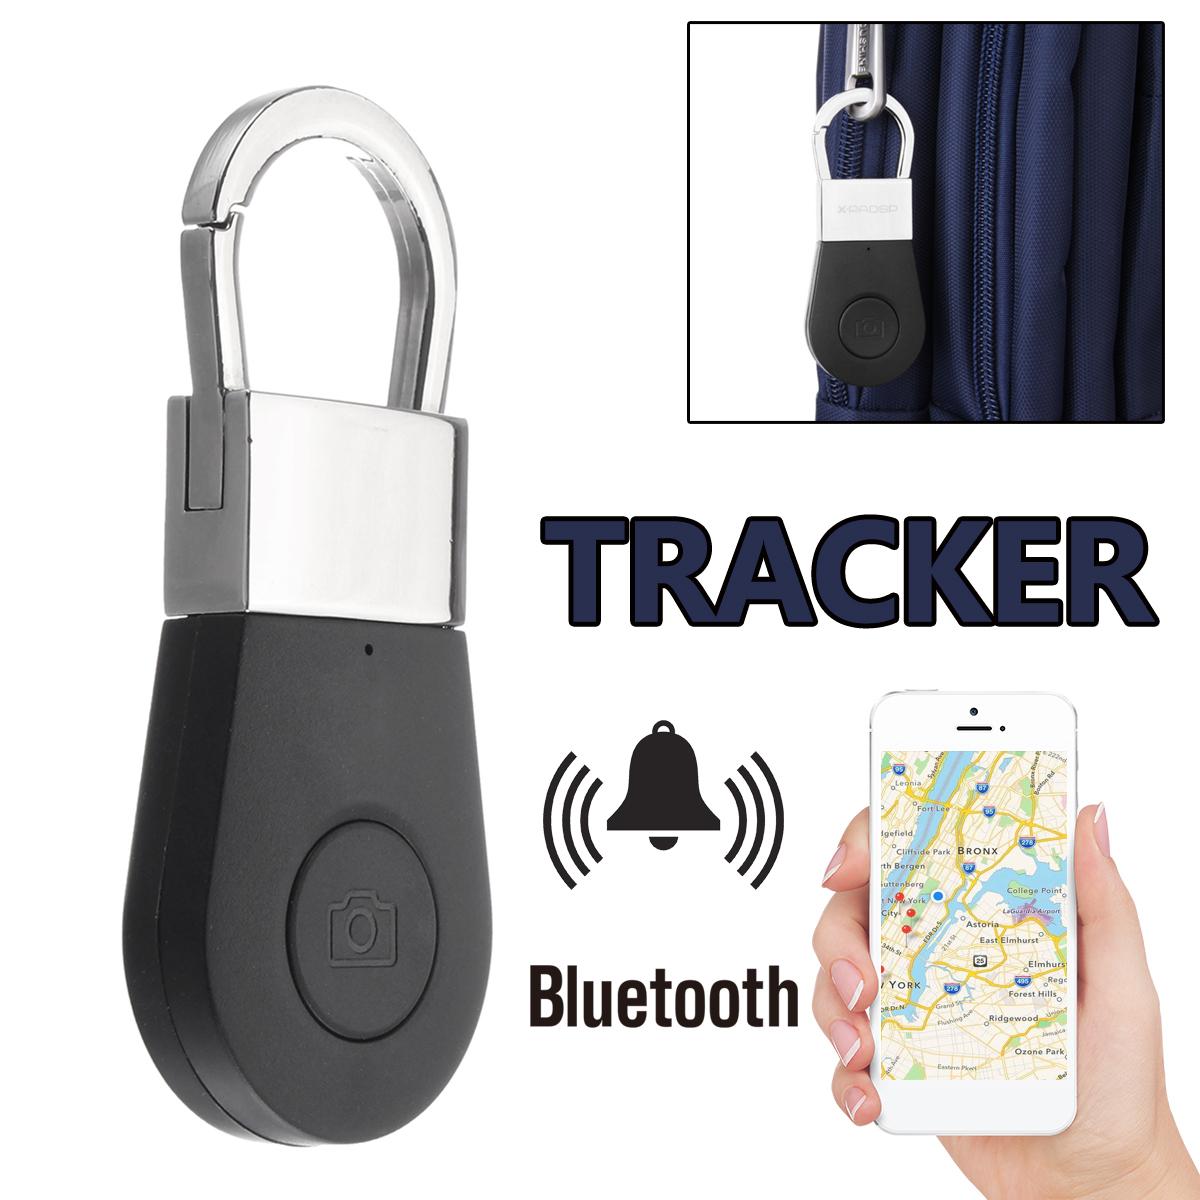 Bluetooth Keychain Alarm GPS Tracker Smart Key Alarm Anti-lost Key Finder Locator Device for Car Child Pet Elder Tracking Tracer new safurance pet dog anti lost tracker smart bluetooth tracer locator tag alarm tracer finder alarm key chain